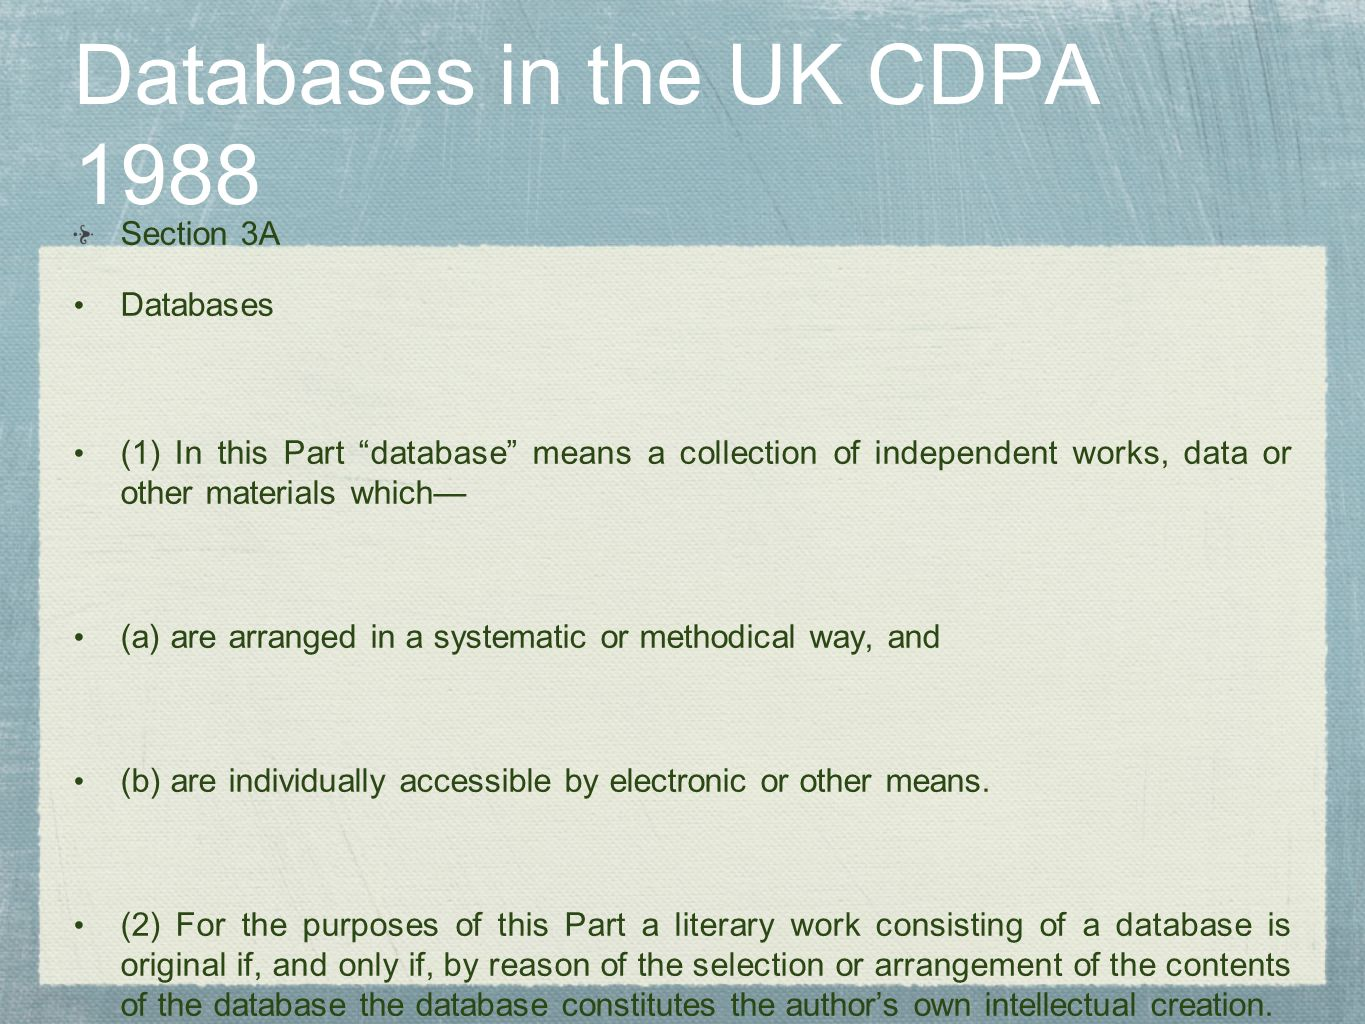 Databases in the UK CDPA 1988